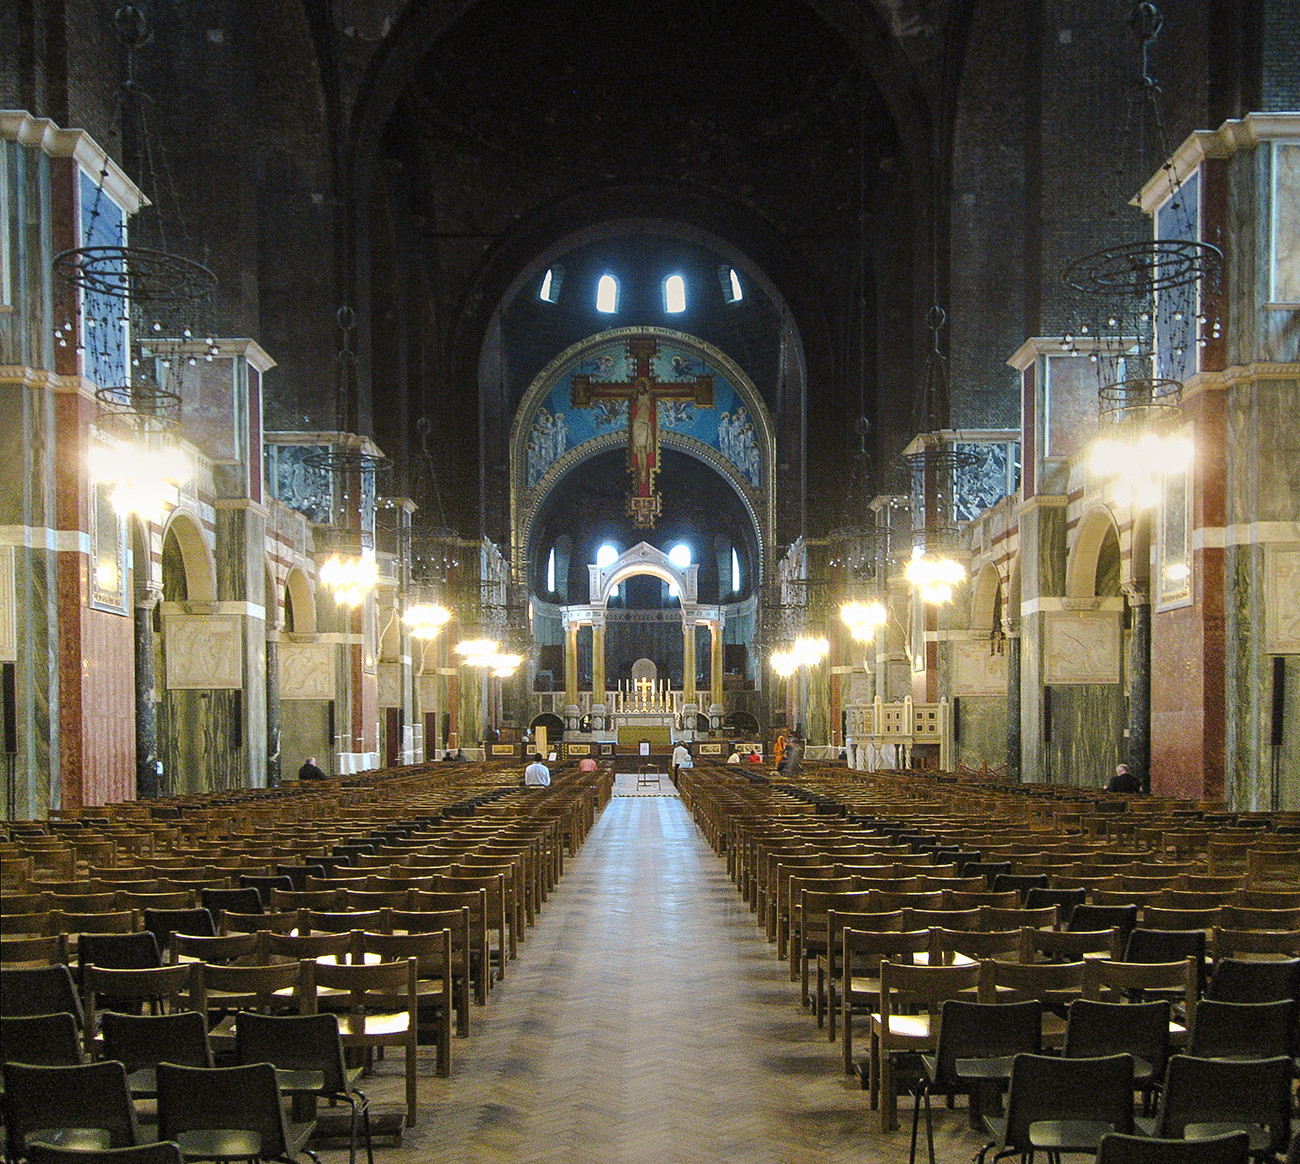 The scene was actually filmed in the Catholic Westminster Cathedral in London (not to be confused with Westminster Abbey)